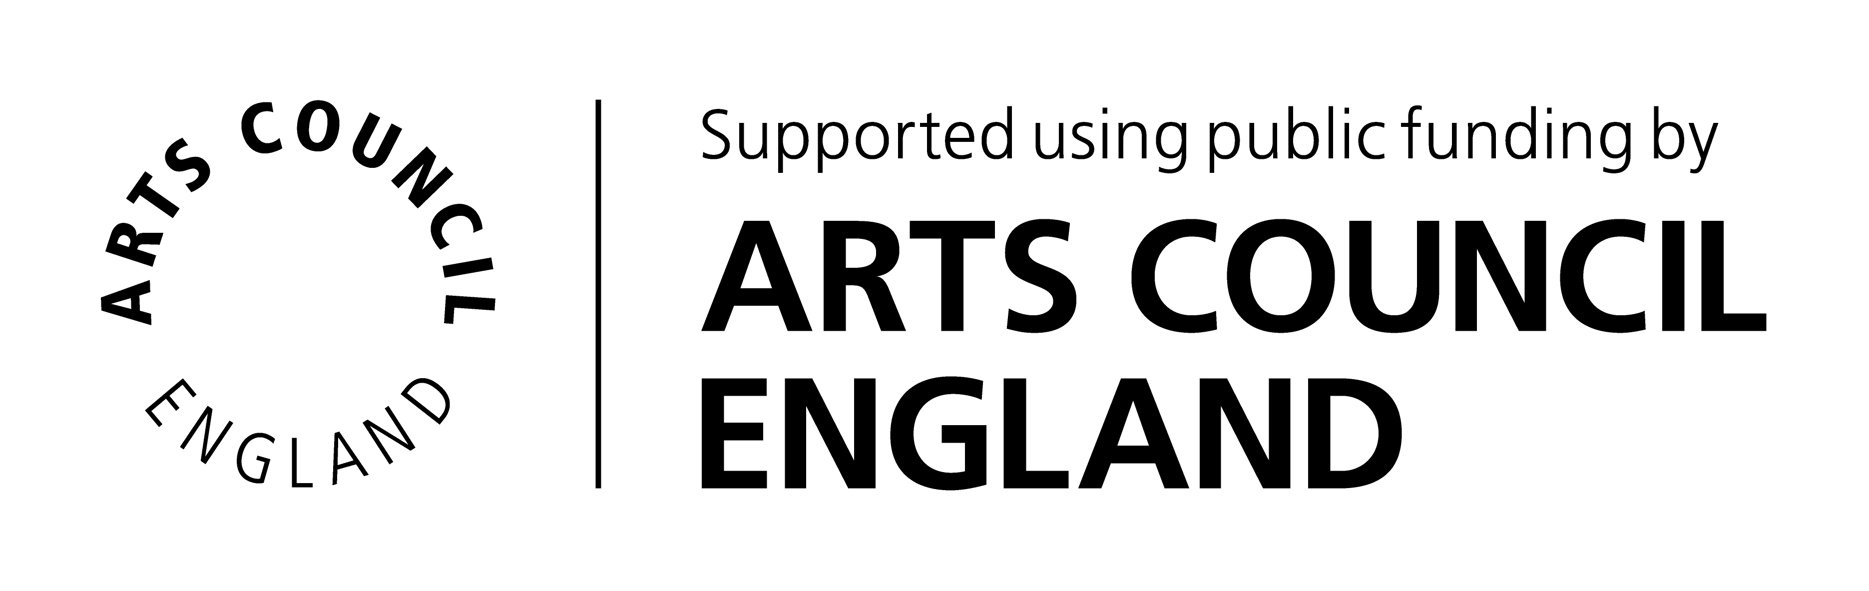 Arts Council England logo.